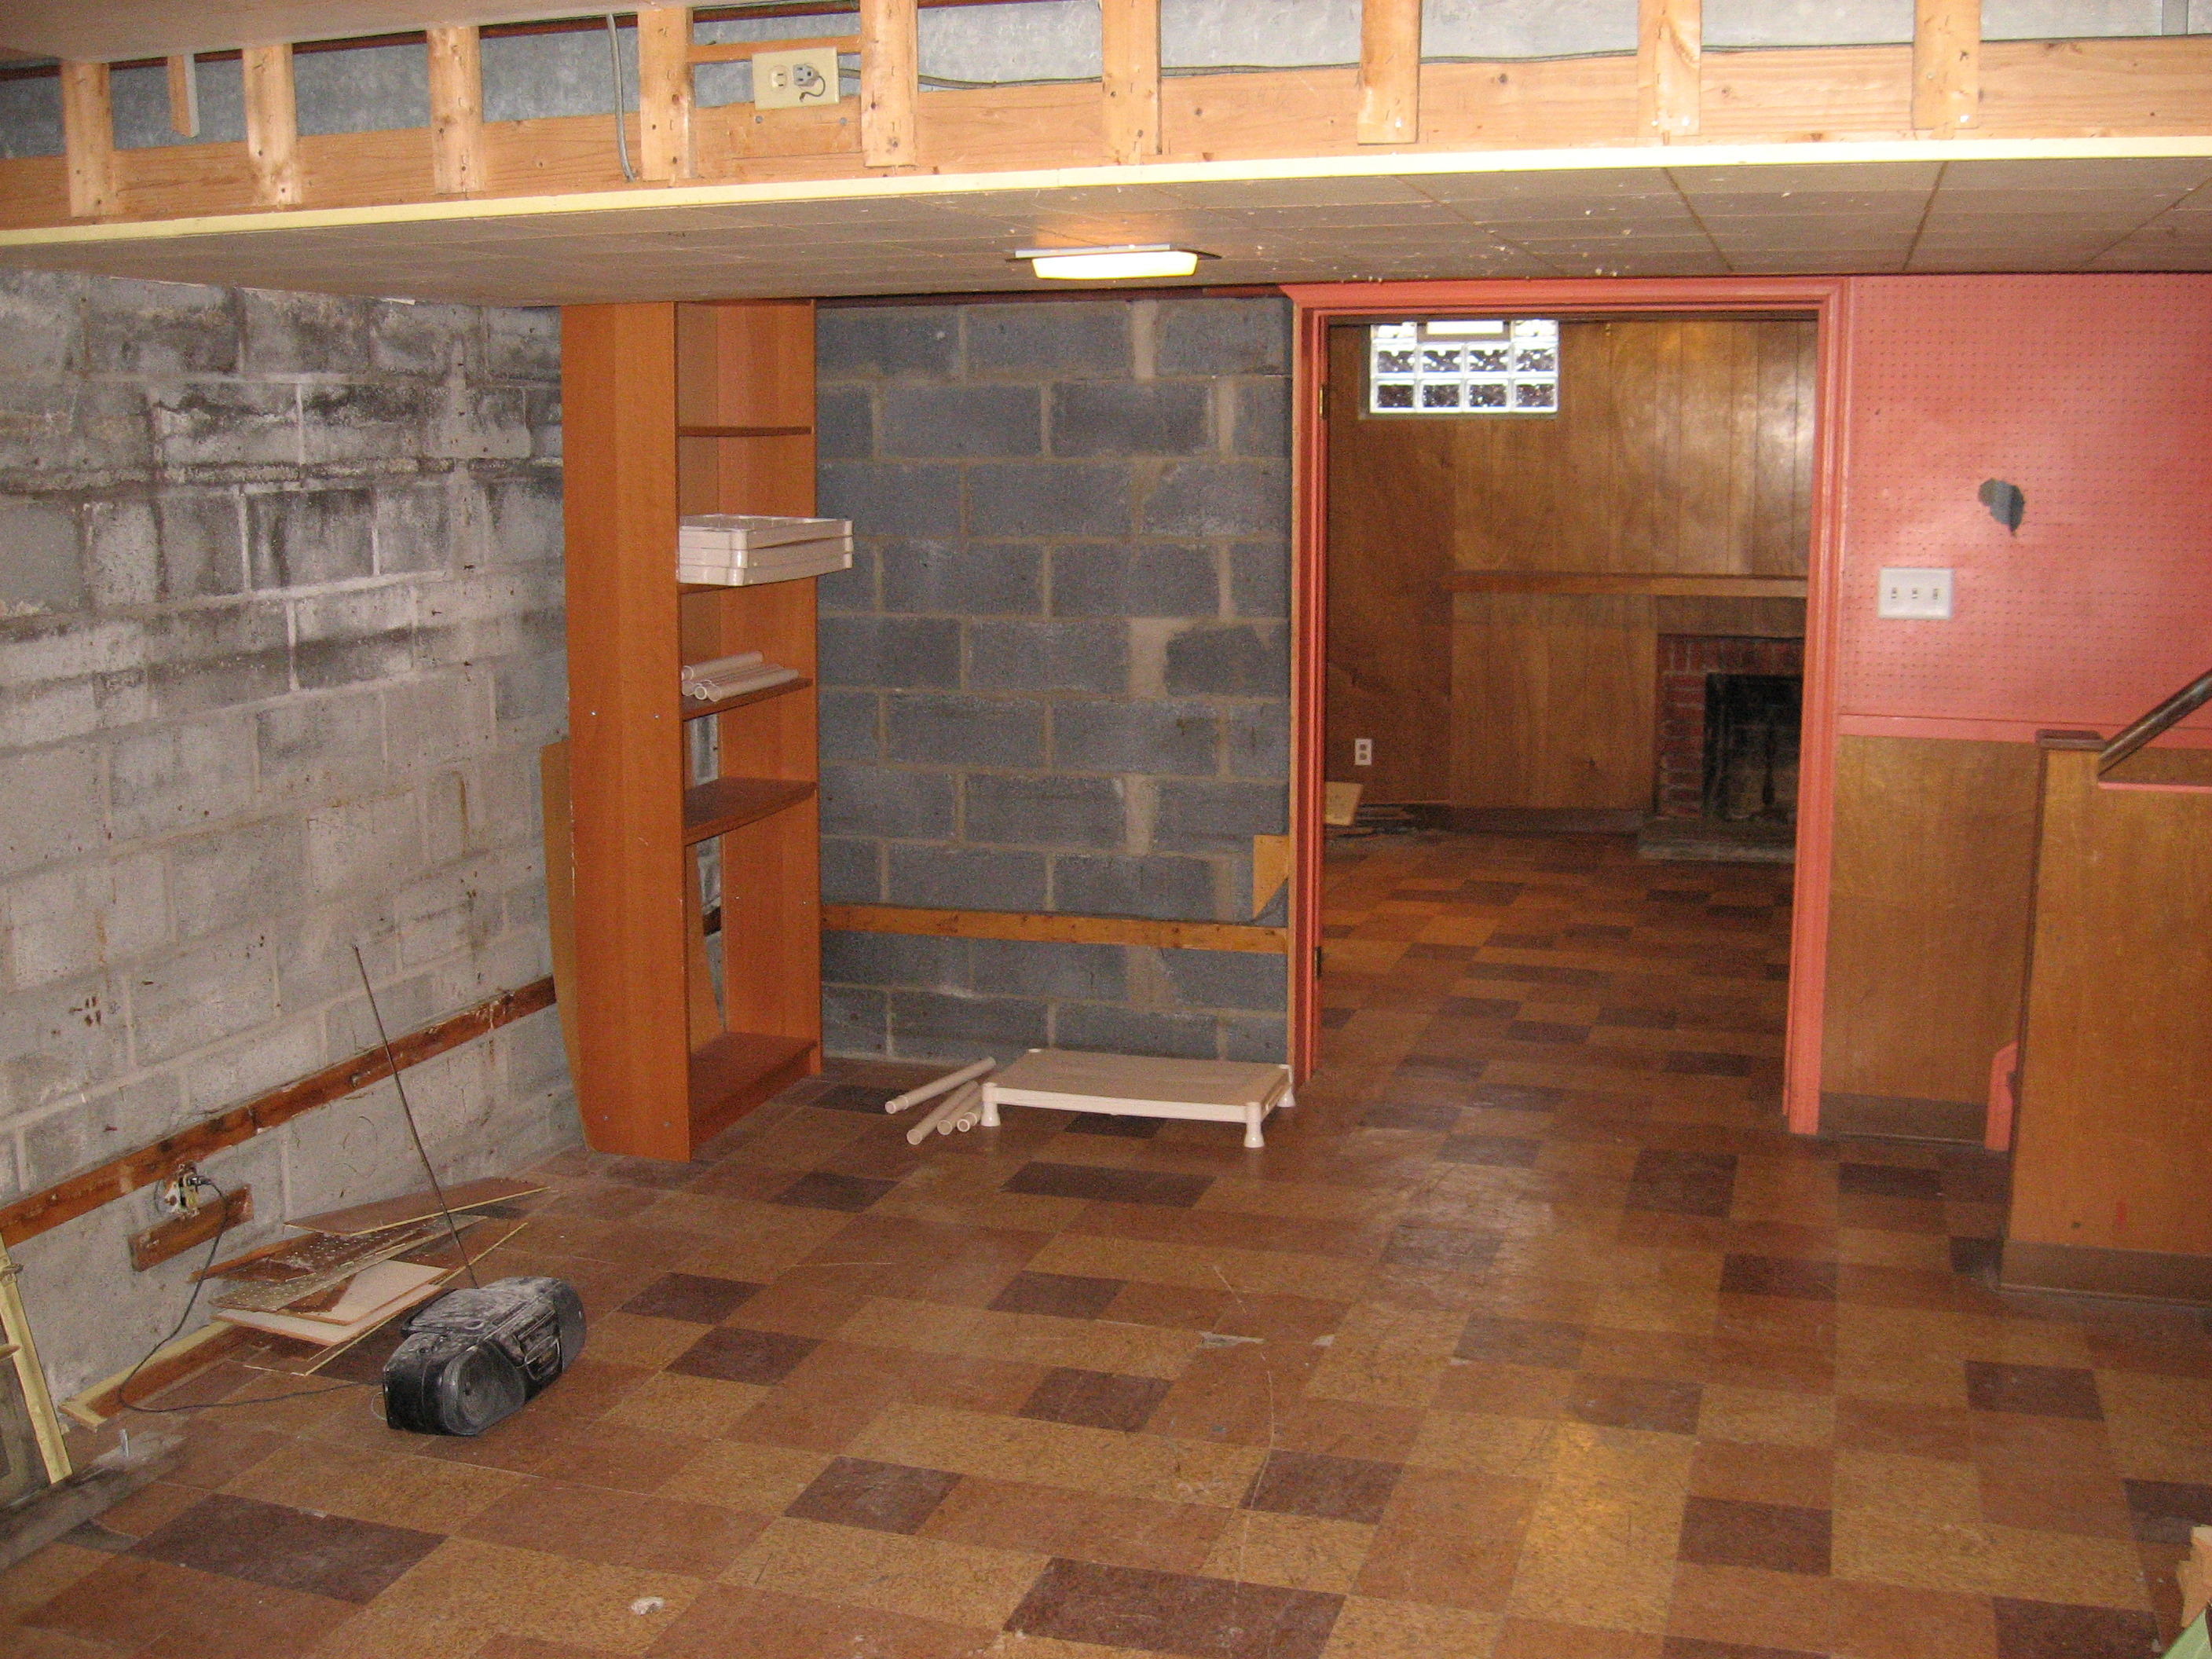 Outdated basement during demolition